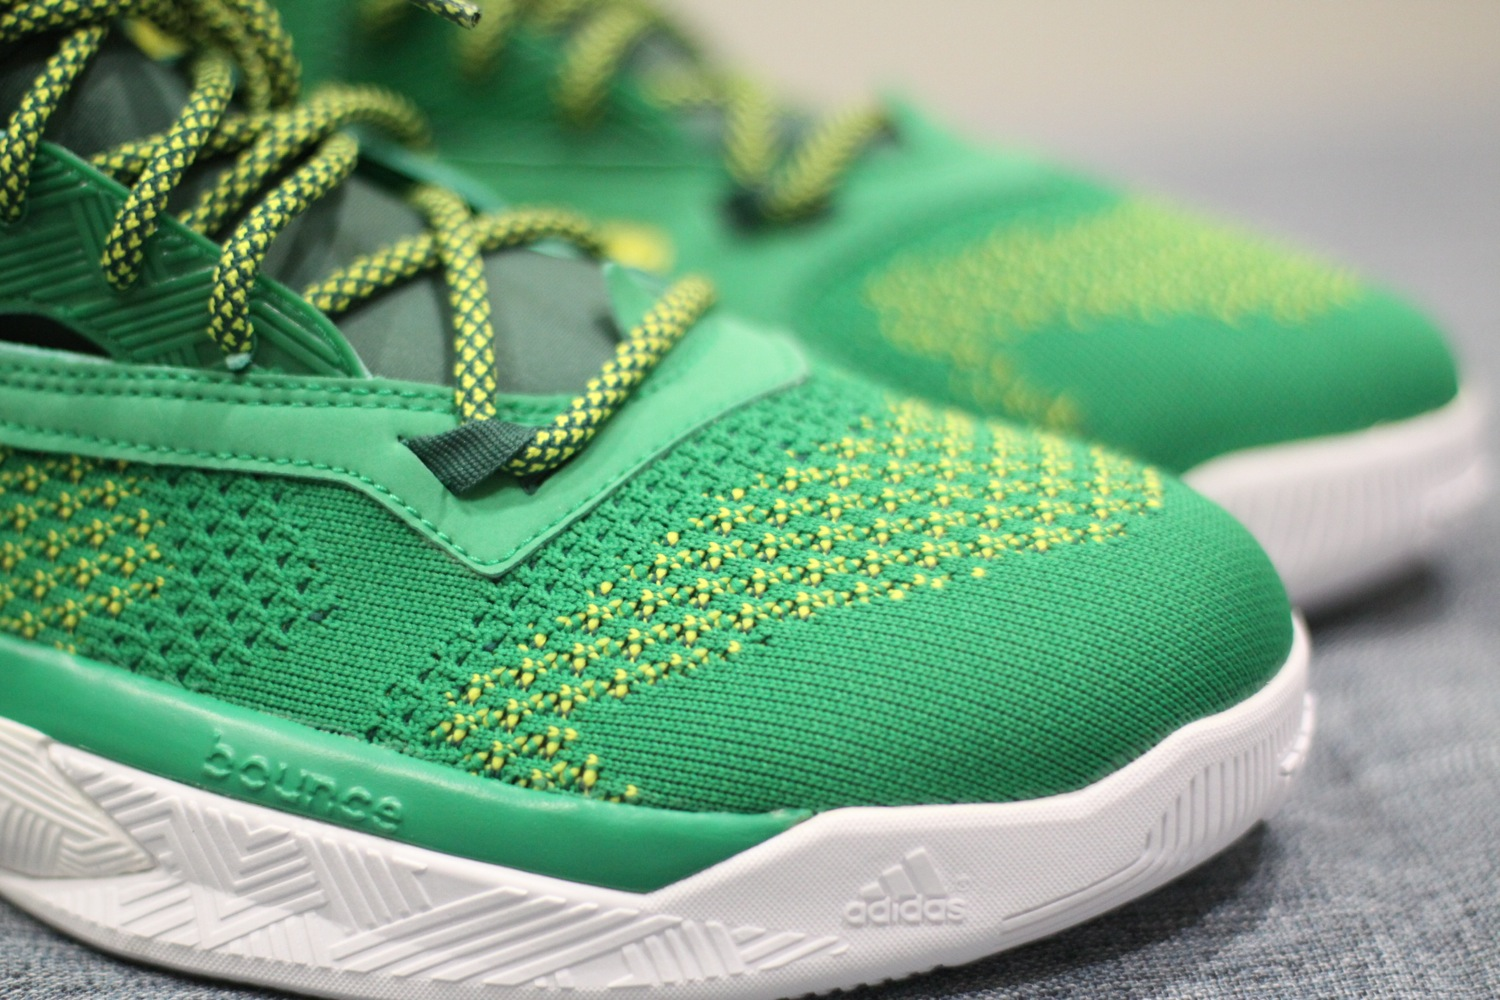 promo code ebe6e efc55 Both feature Primeknit uppers and Bounce cushioning. Thank you to the NBA  Store PH for hooking us up with the Oakland As colorway, now lets get  right to ...